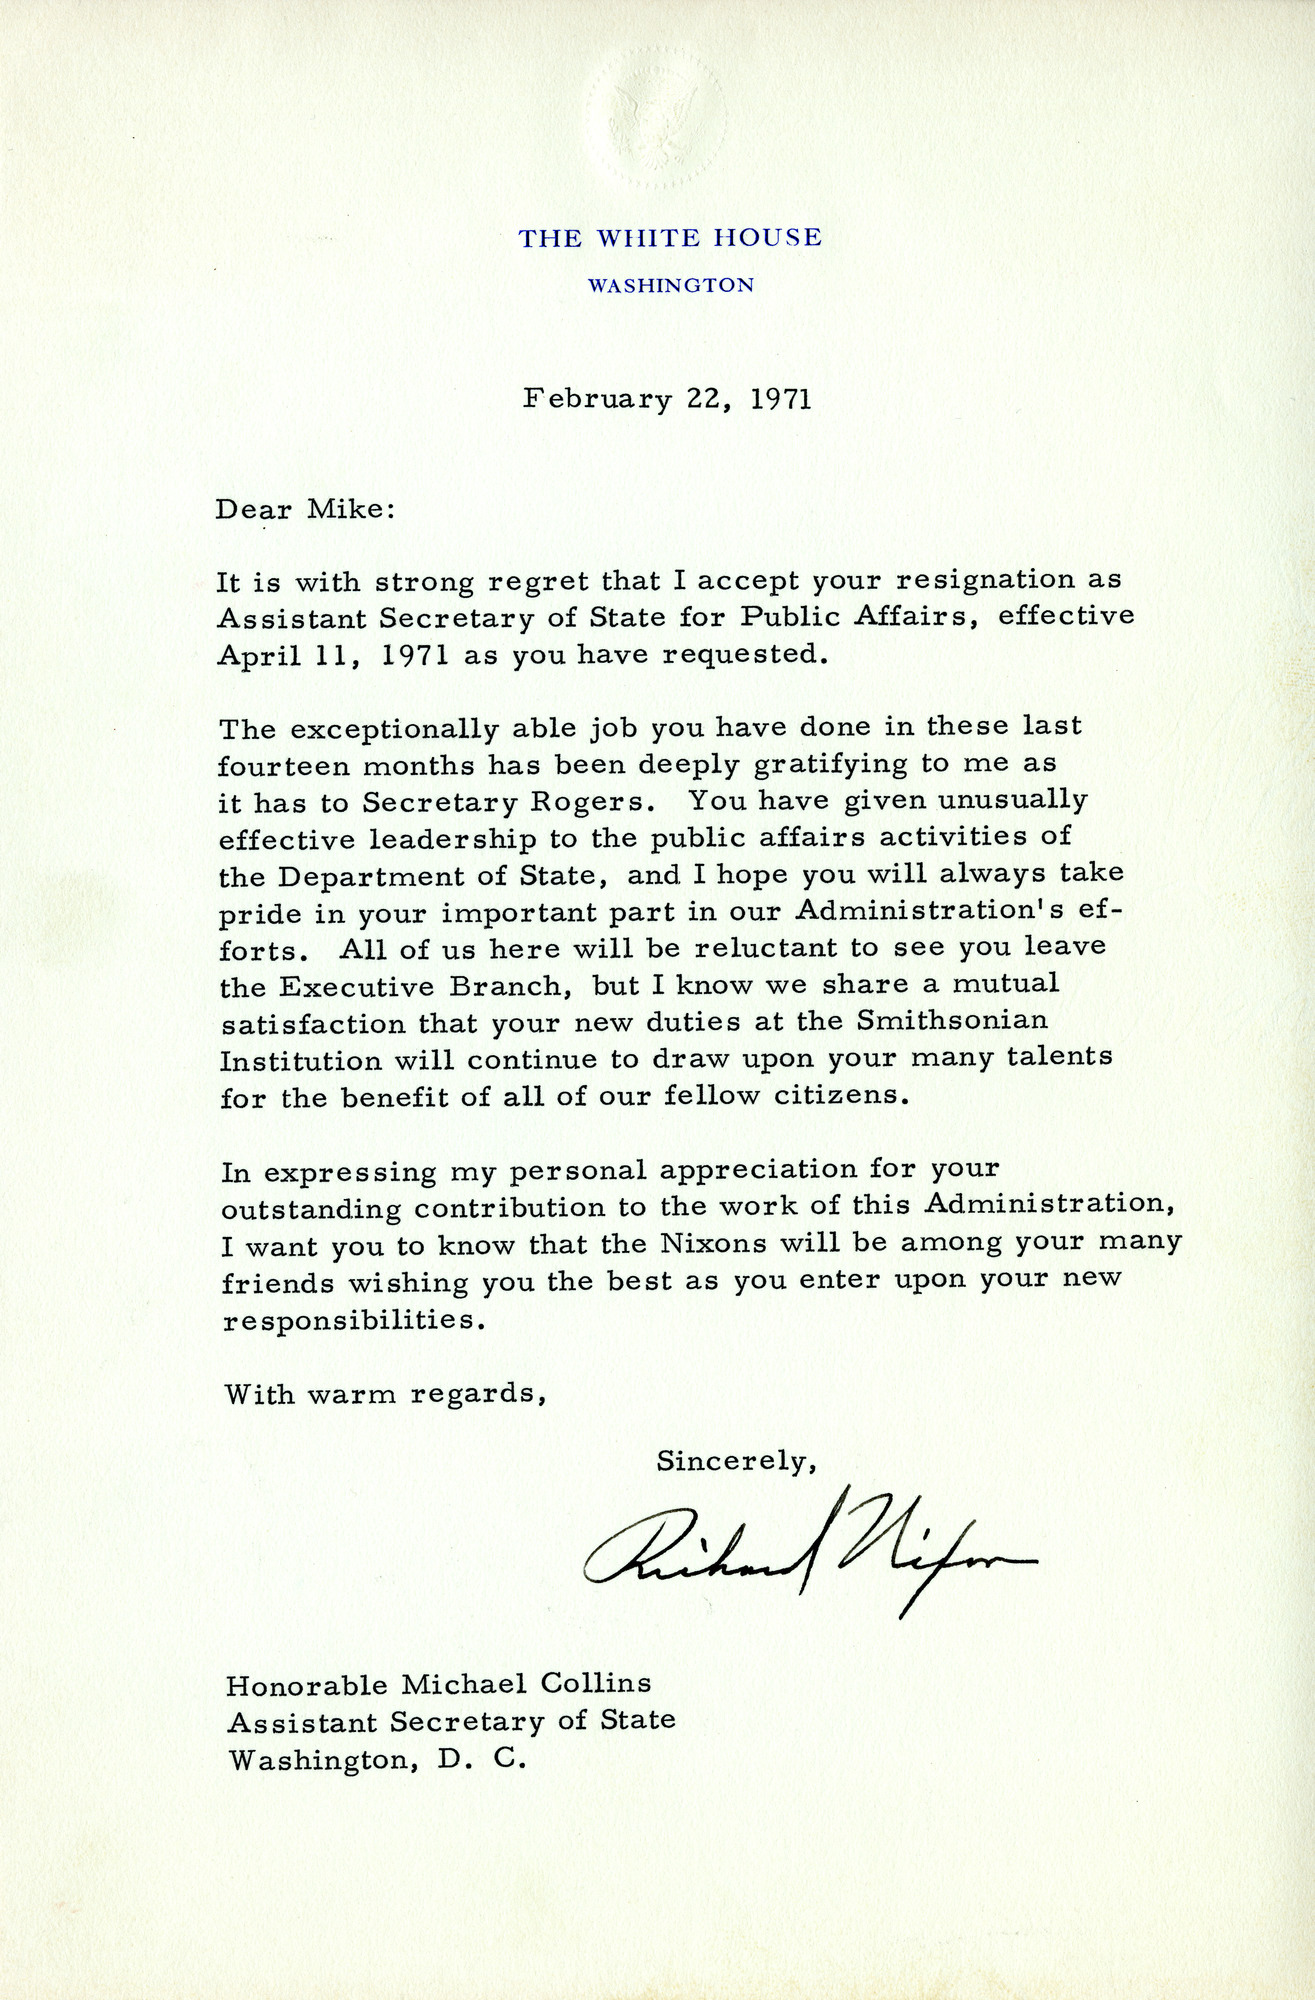 http://spec.lib.vt.edu/pickup/Omeka_upload/Ms1989-029_B18_F1_MichaelCollins_Letter_1971_0222.jpg